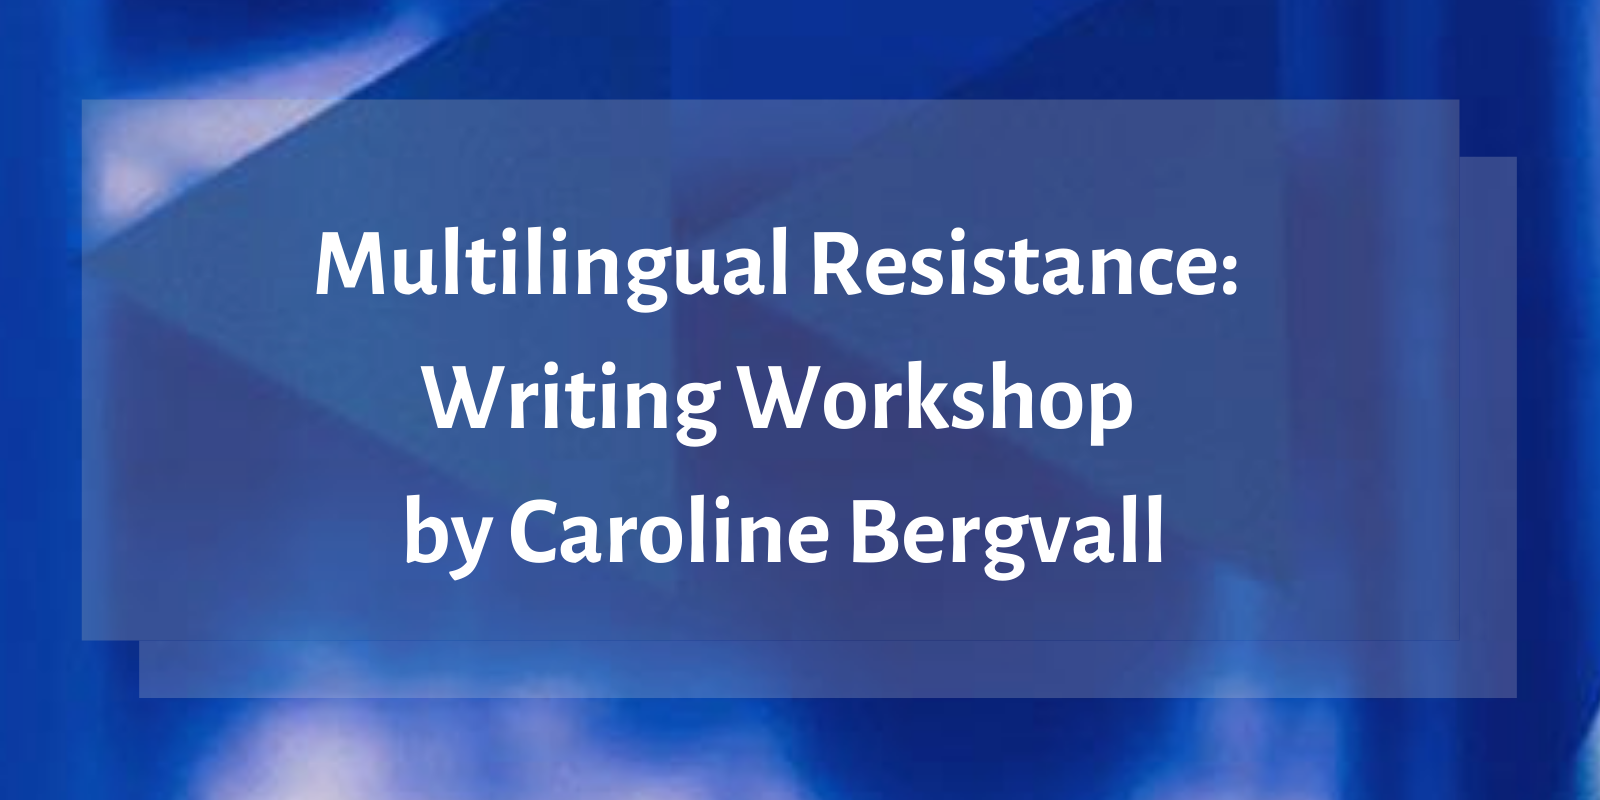 Workshop: Multilingual Resistance with Caroline Bergvall